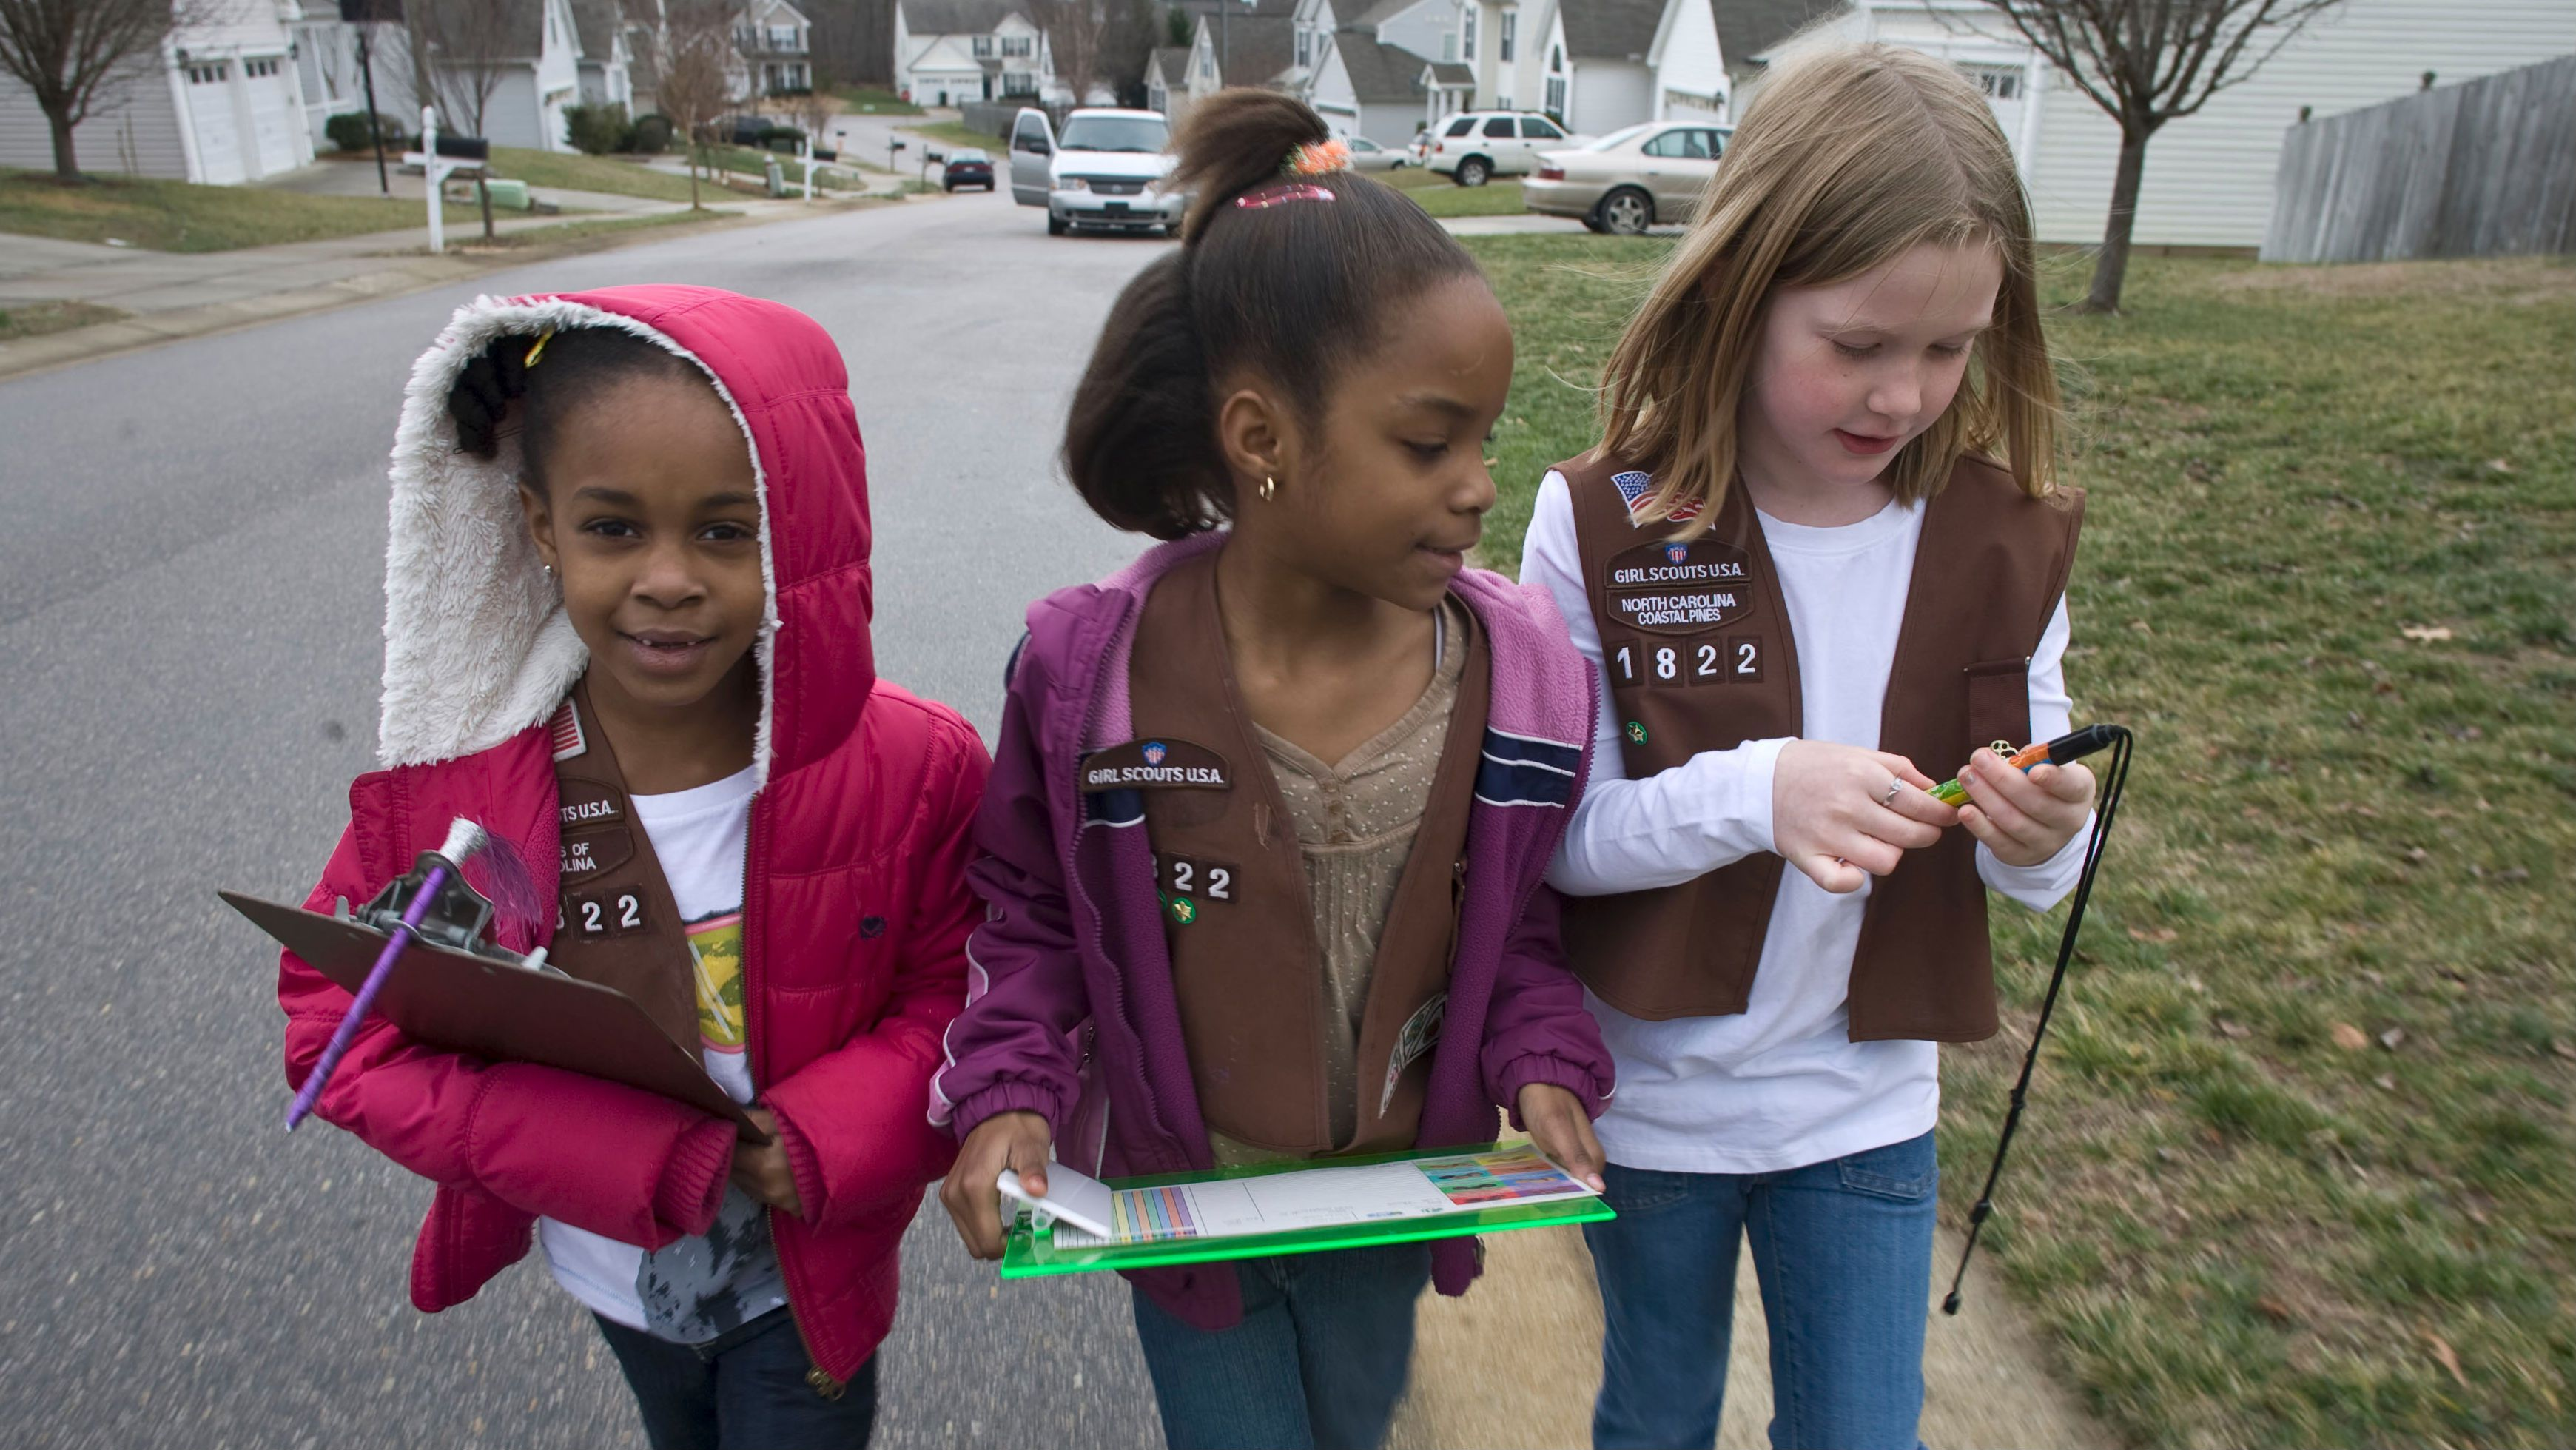 ** FOR RELEASE IN PMS EDITIONS OF WEDNESDAY, FEB. 4** Troop 1822 Brownie Scouts Aliya Gill, left, Lindsey Russ, center, and Natalie Rouse, canvass a north Raleigh neighborhood selling Girl Scout cookies on Saturday, Jan. 24, 2009. Ever the optimists, Girl Scouts have hit the ground running - and walking - knocking on door after door in the annual rite of selling their cookies. But this year some Scouts have bumped up against an intractable opponent: the economy. (AP Photo/The News & Observer, Robert Willett)